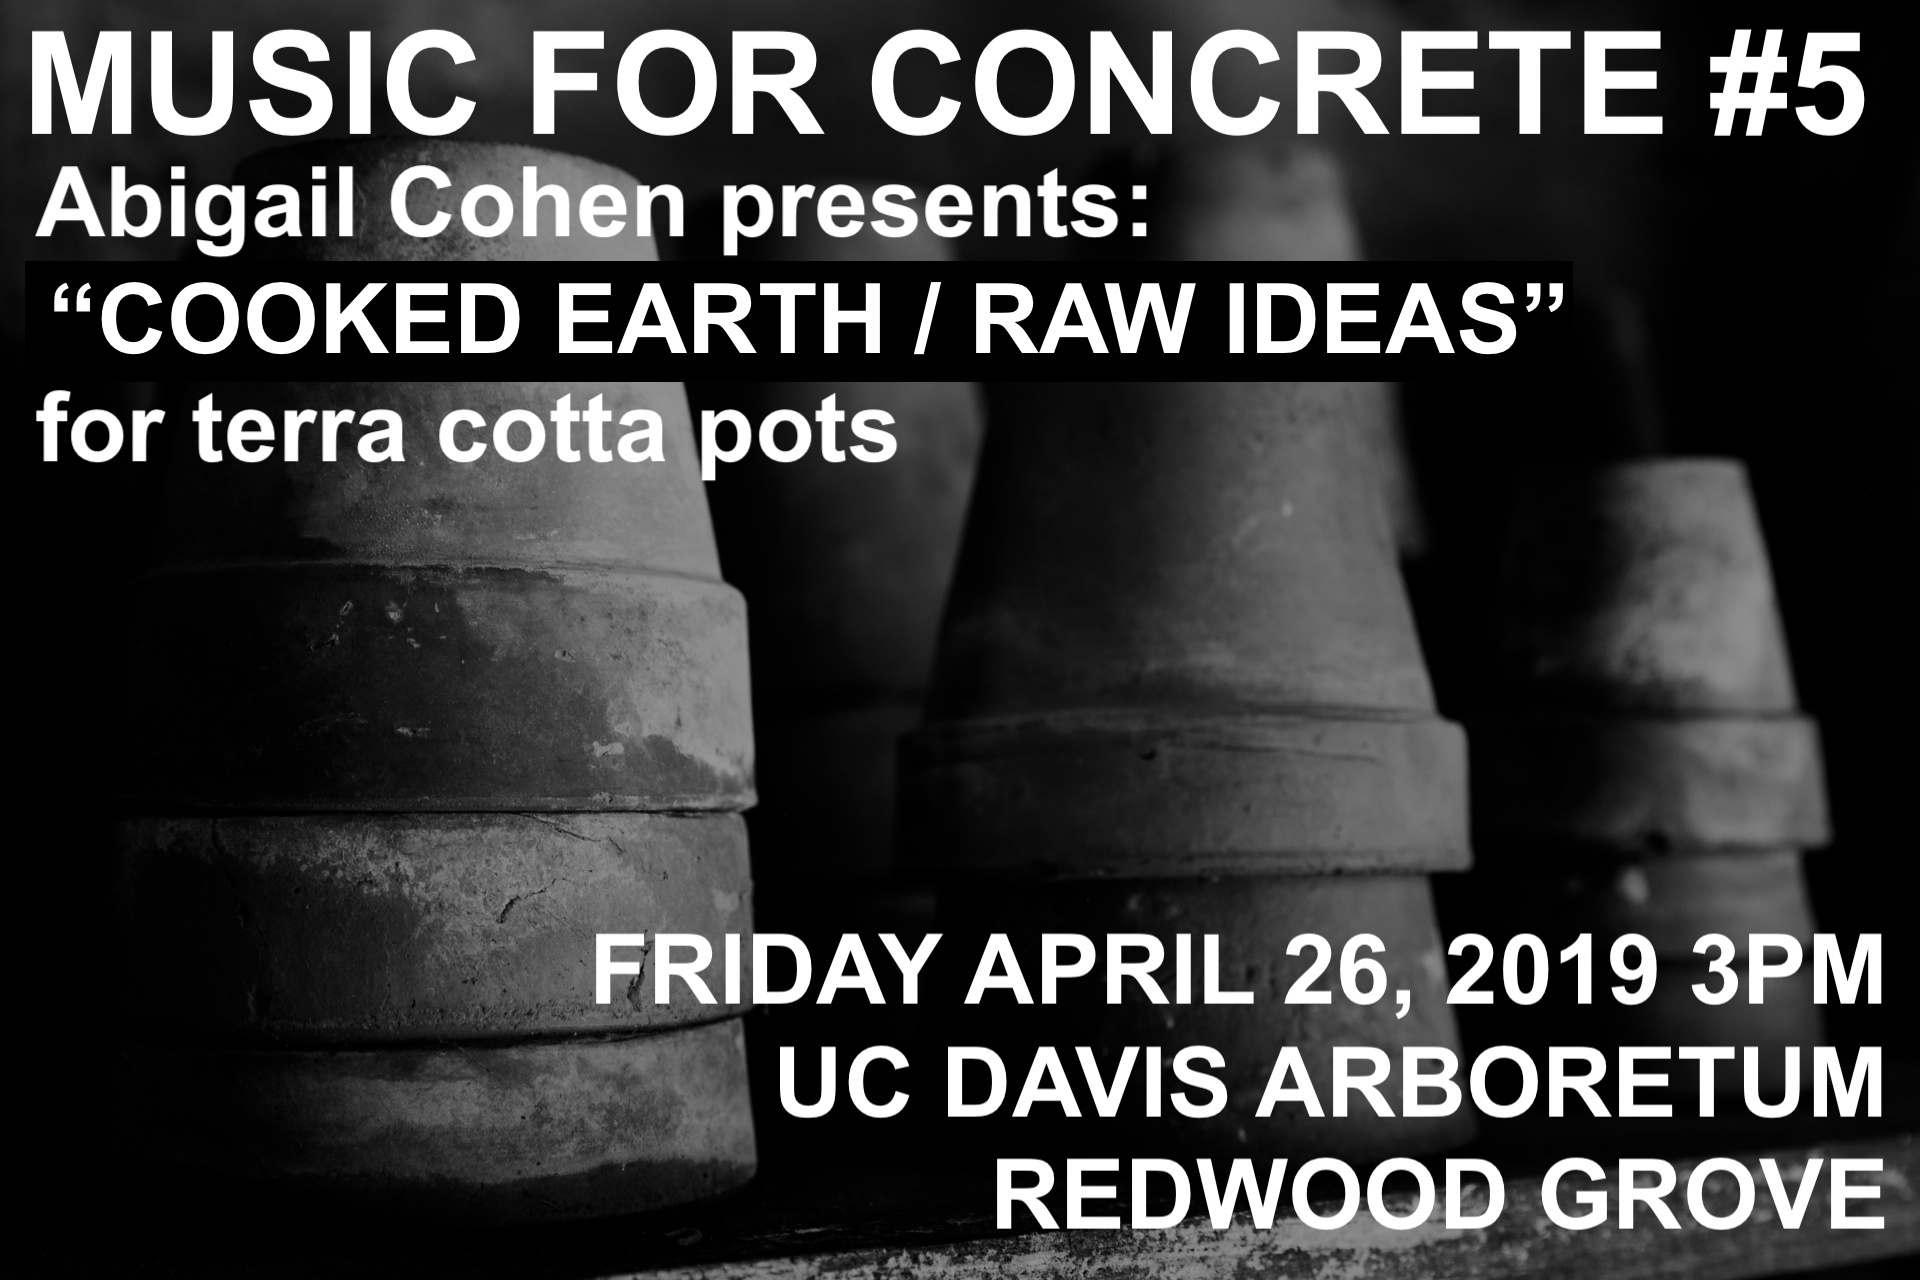 MF5 cooked earth raw ideas flyer.jpg